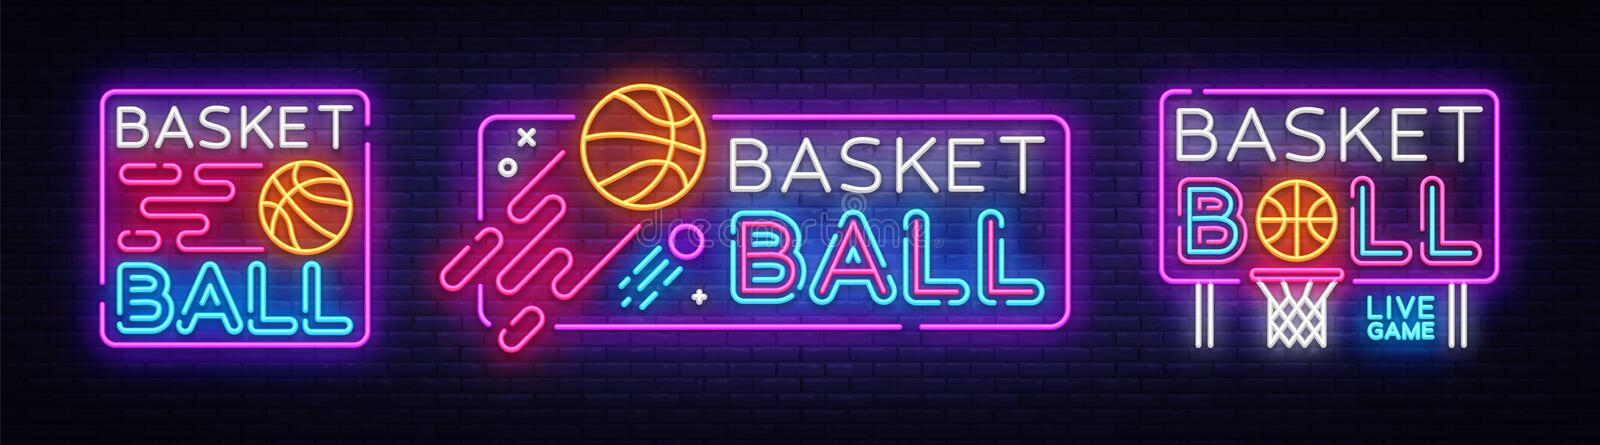 Basketball neon sign collection vector. Basketball Design template neon sign, light banner, neon signboard, nightly stock illustration